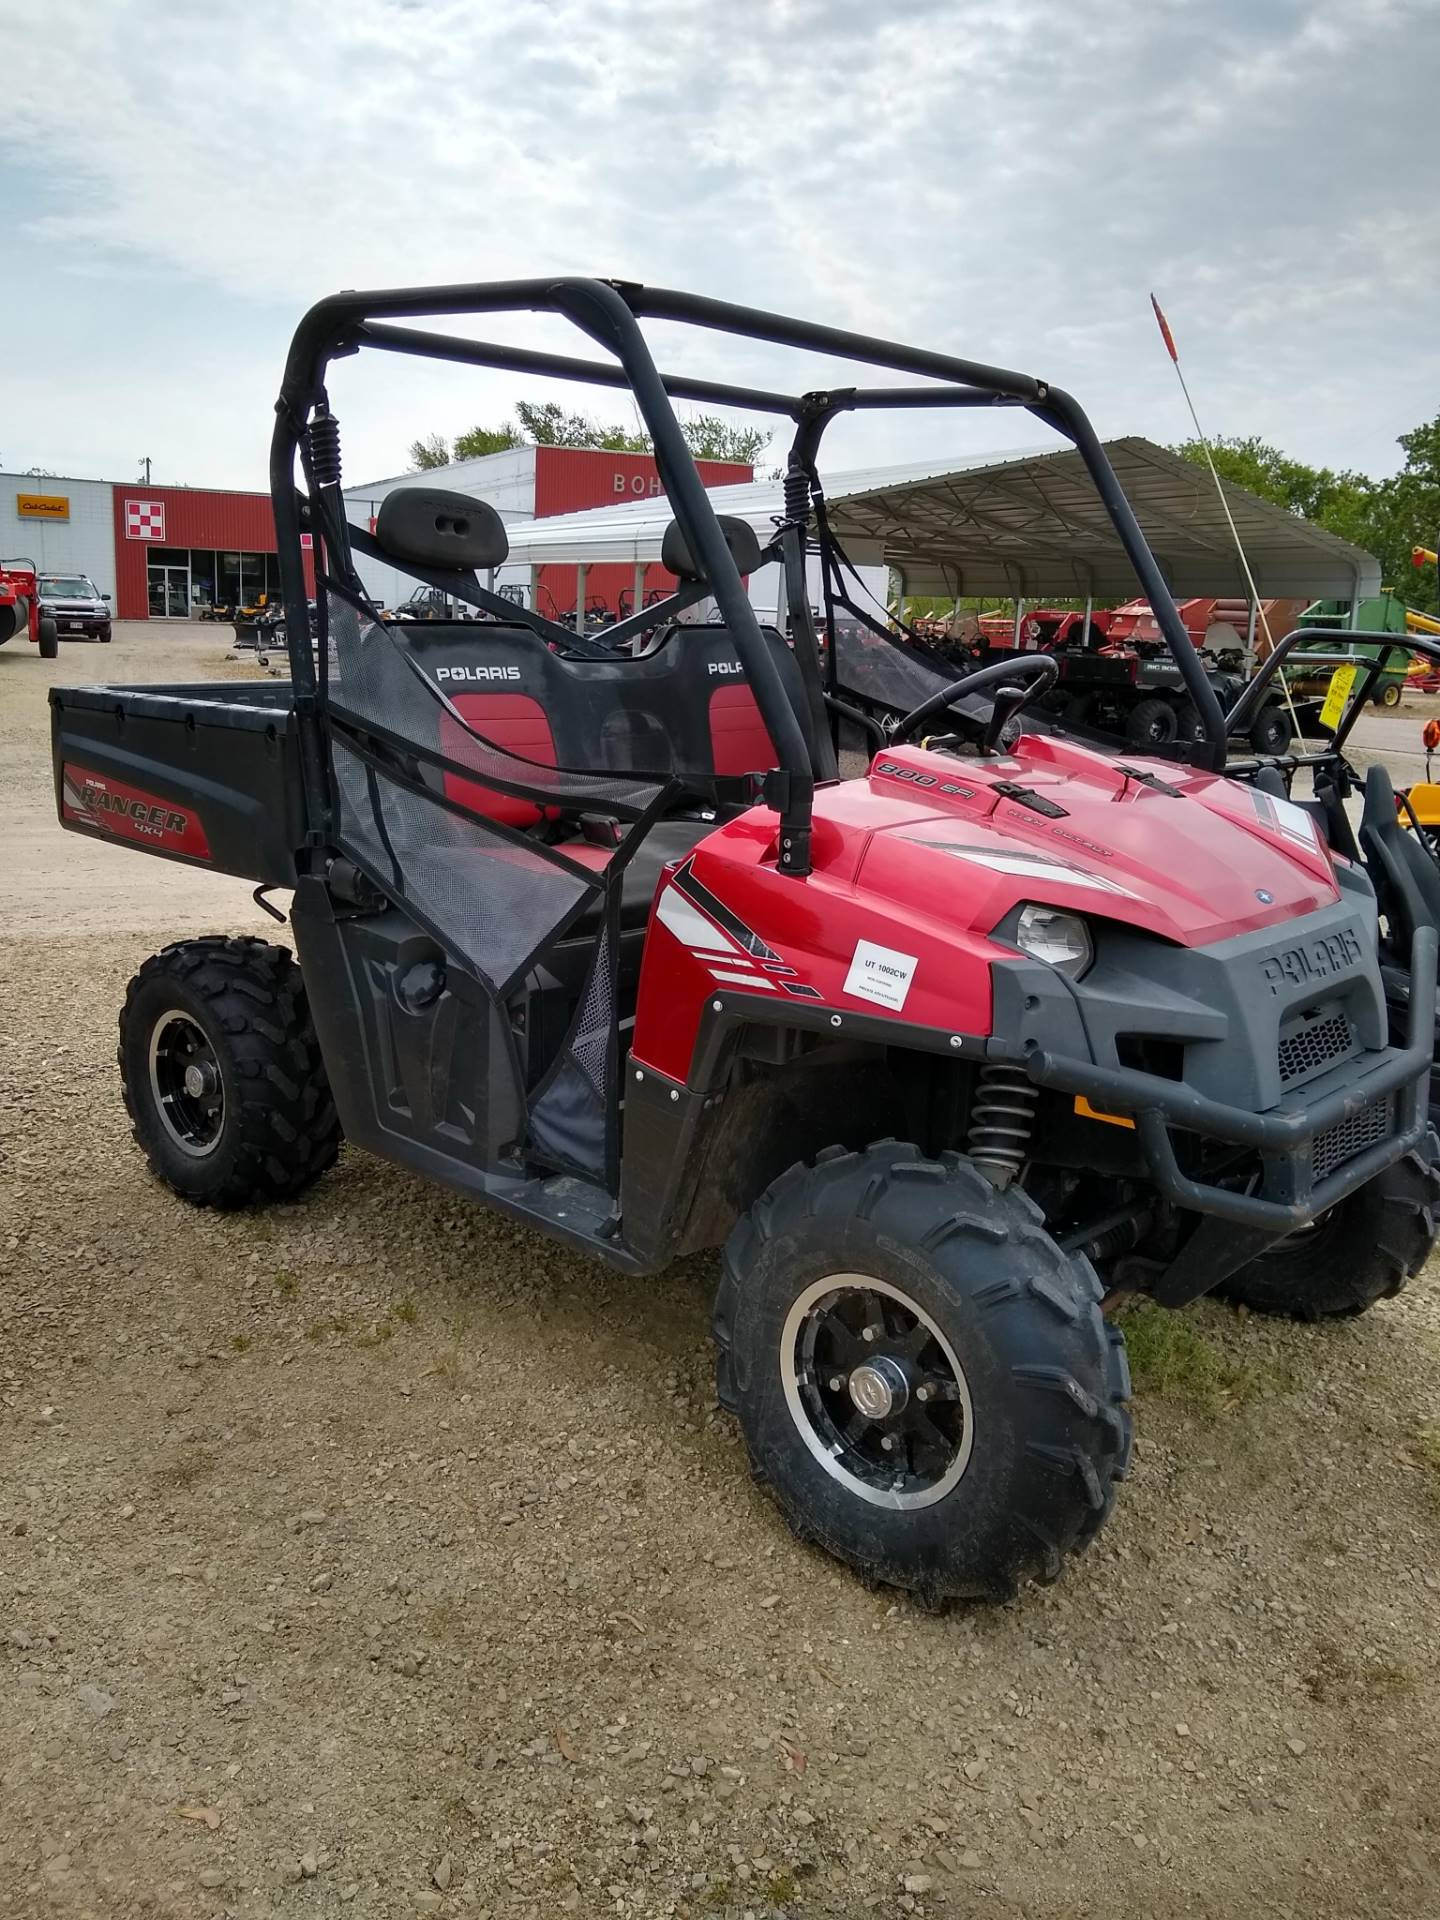 hight resolution of 2013 polaris ranger 800 eps sunset red le in berlin wisconsin photo 1